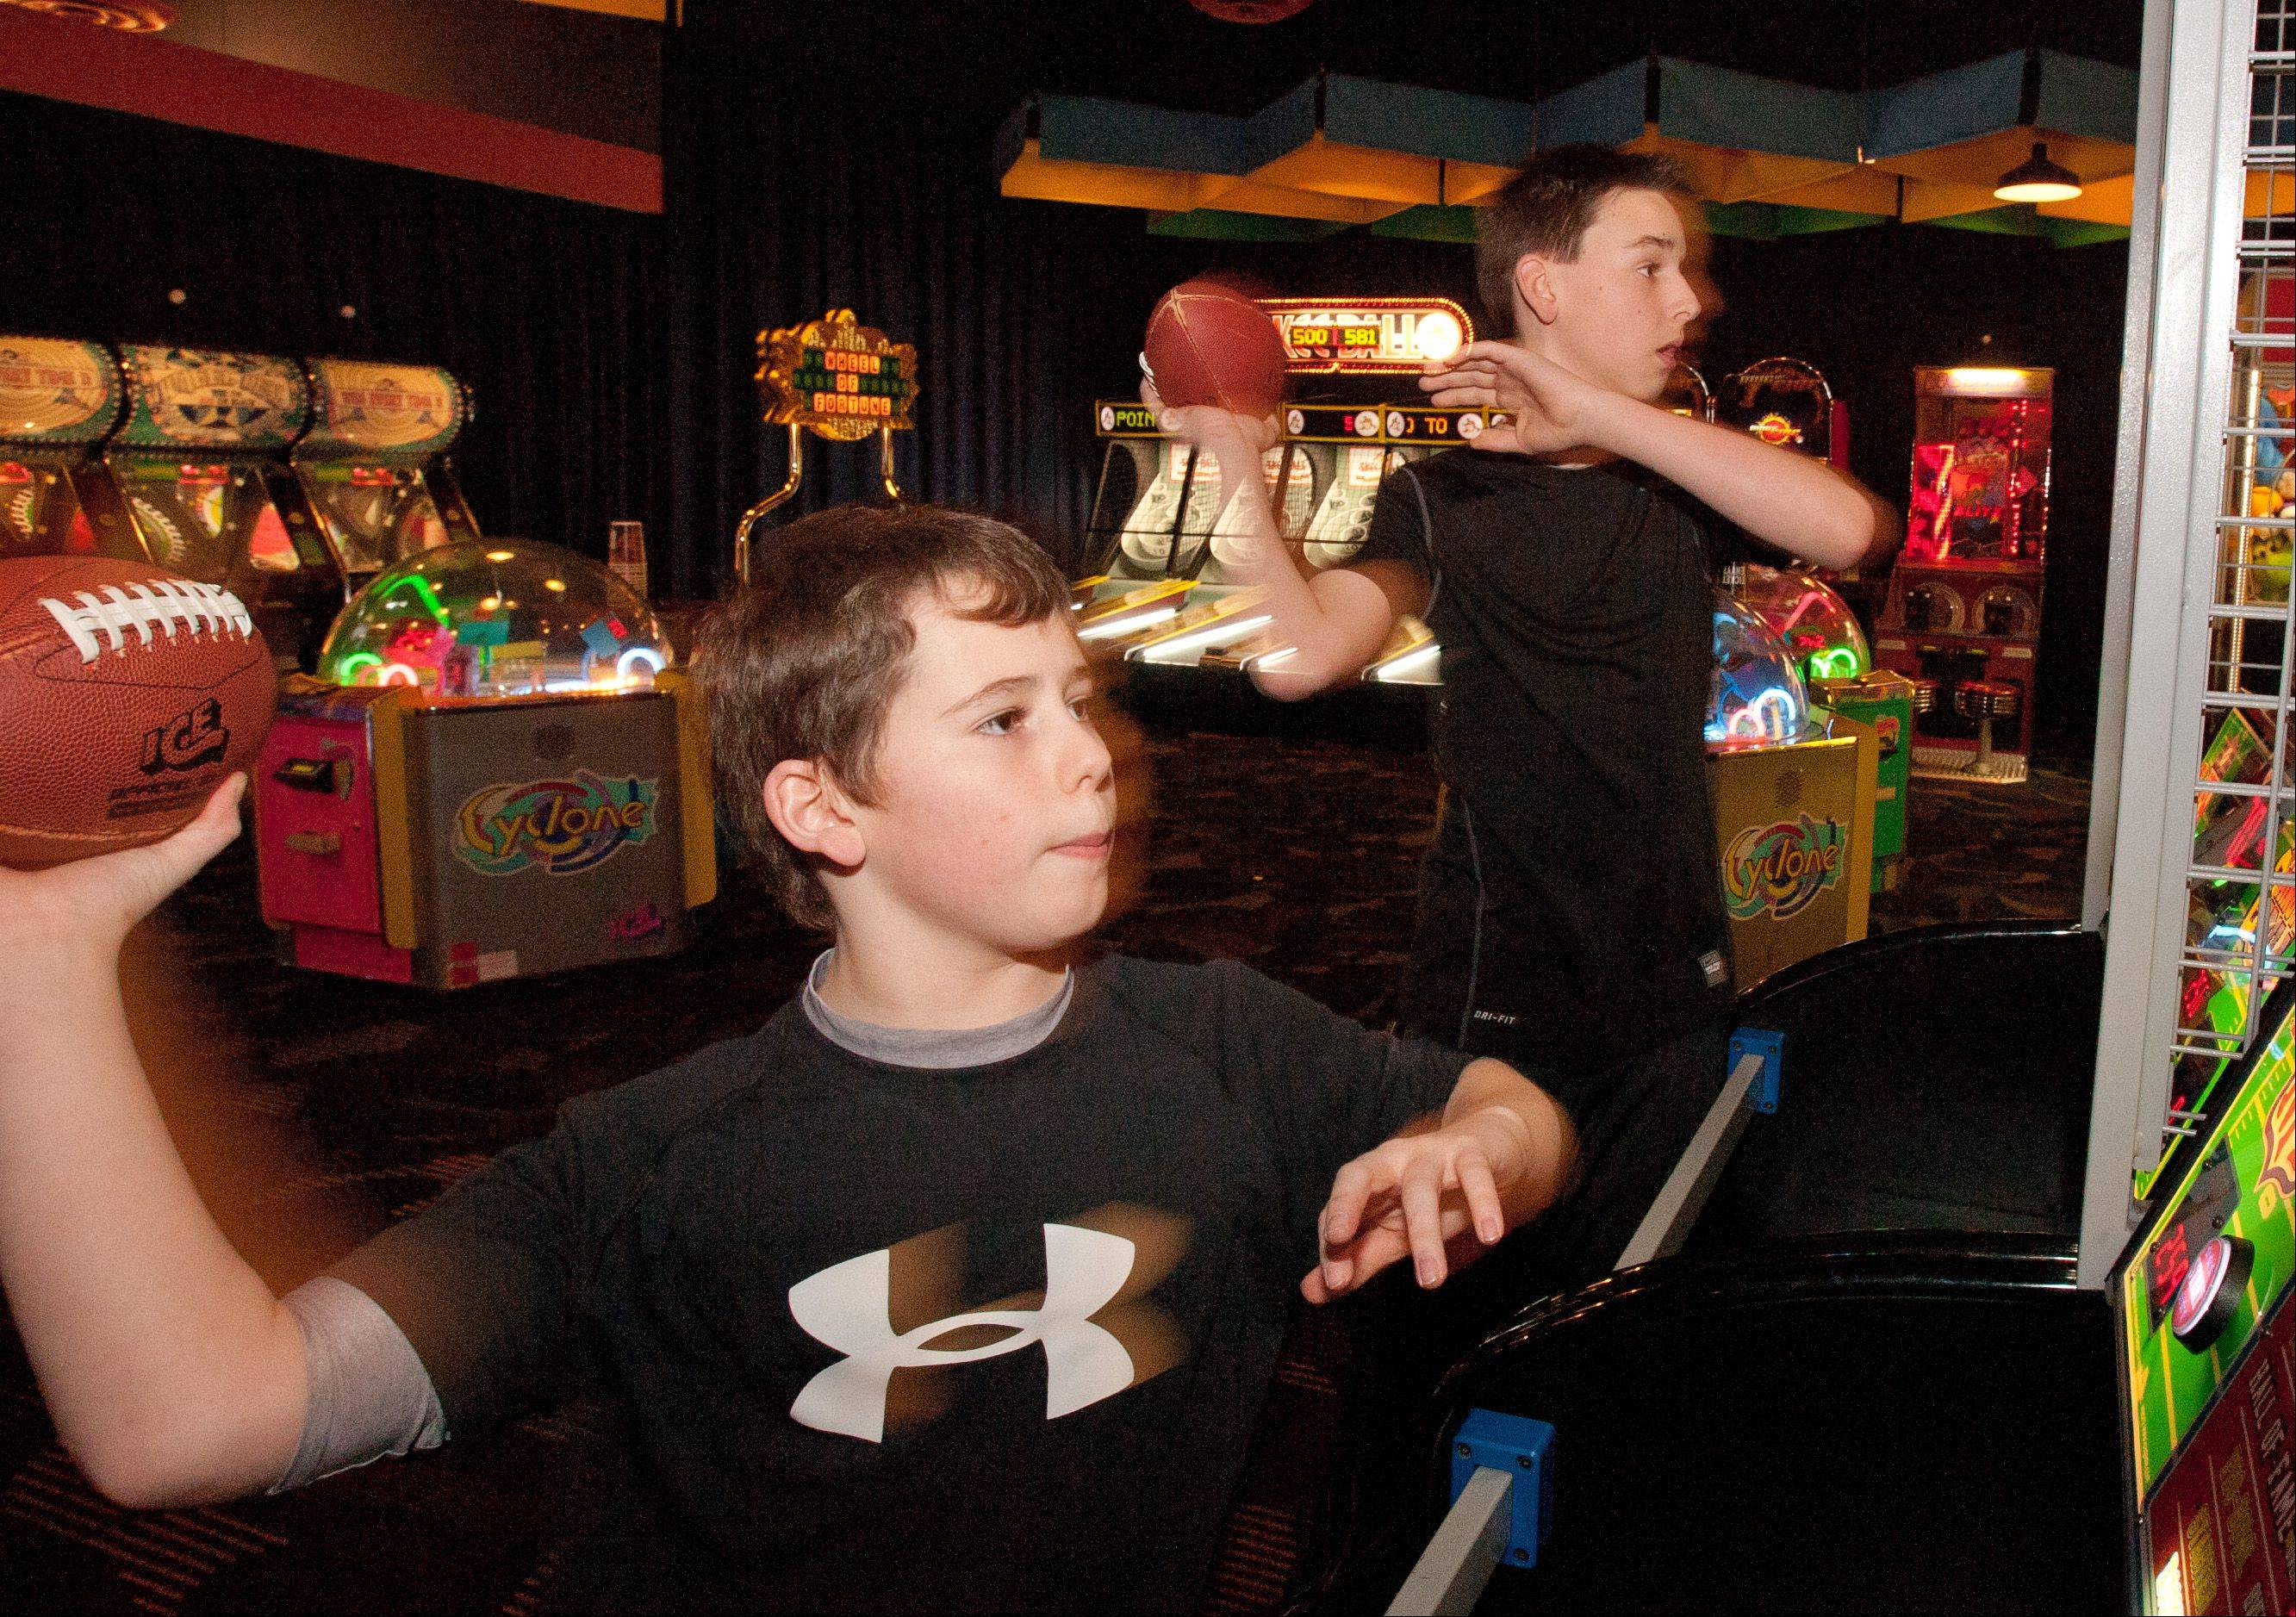 Griffin Coleman, 12, of Plainfield, left, and Andrew Gorski, 12, of Plainfield, right, play interactive video games at Dave and Buster's in Addison.